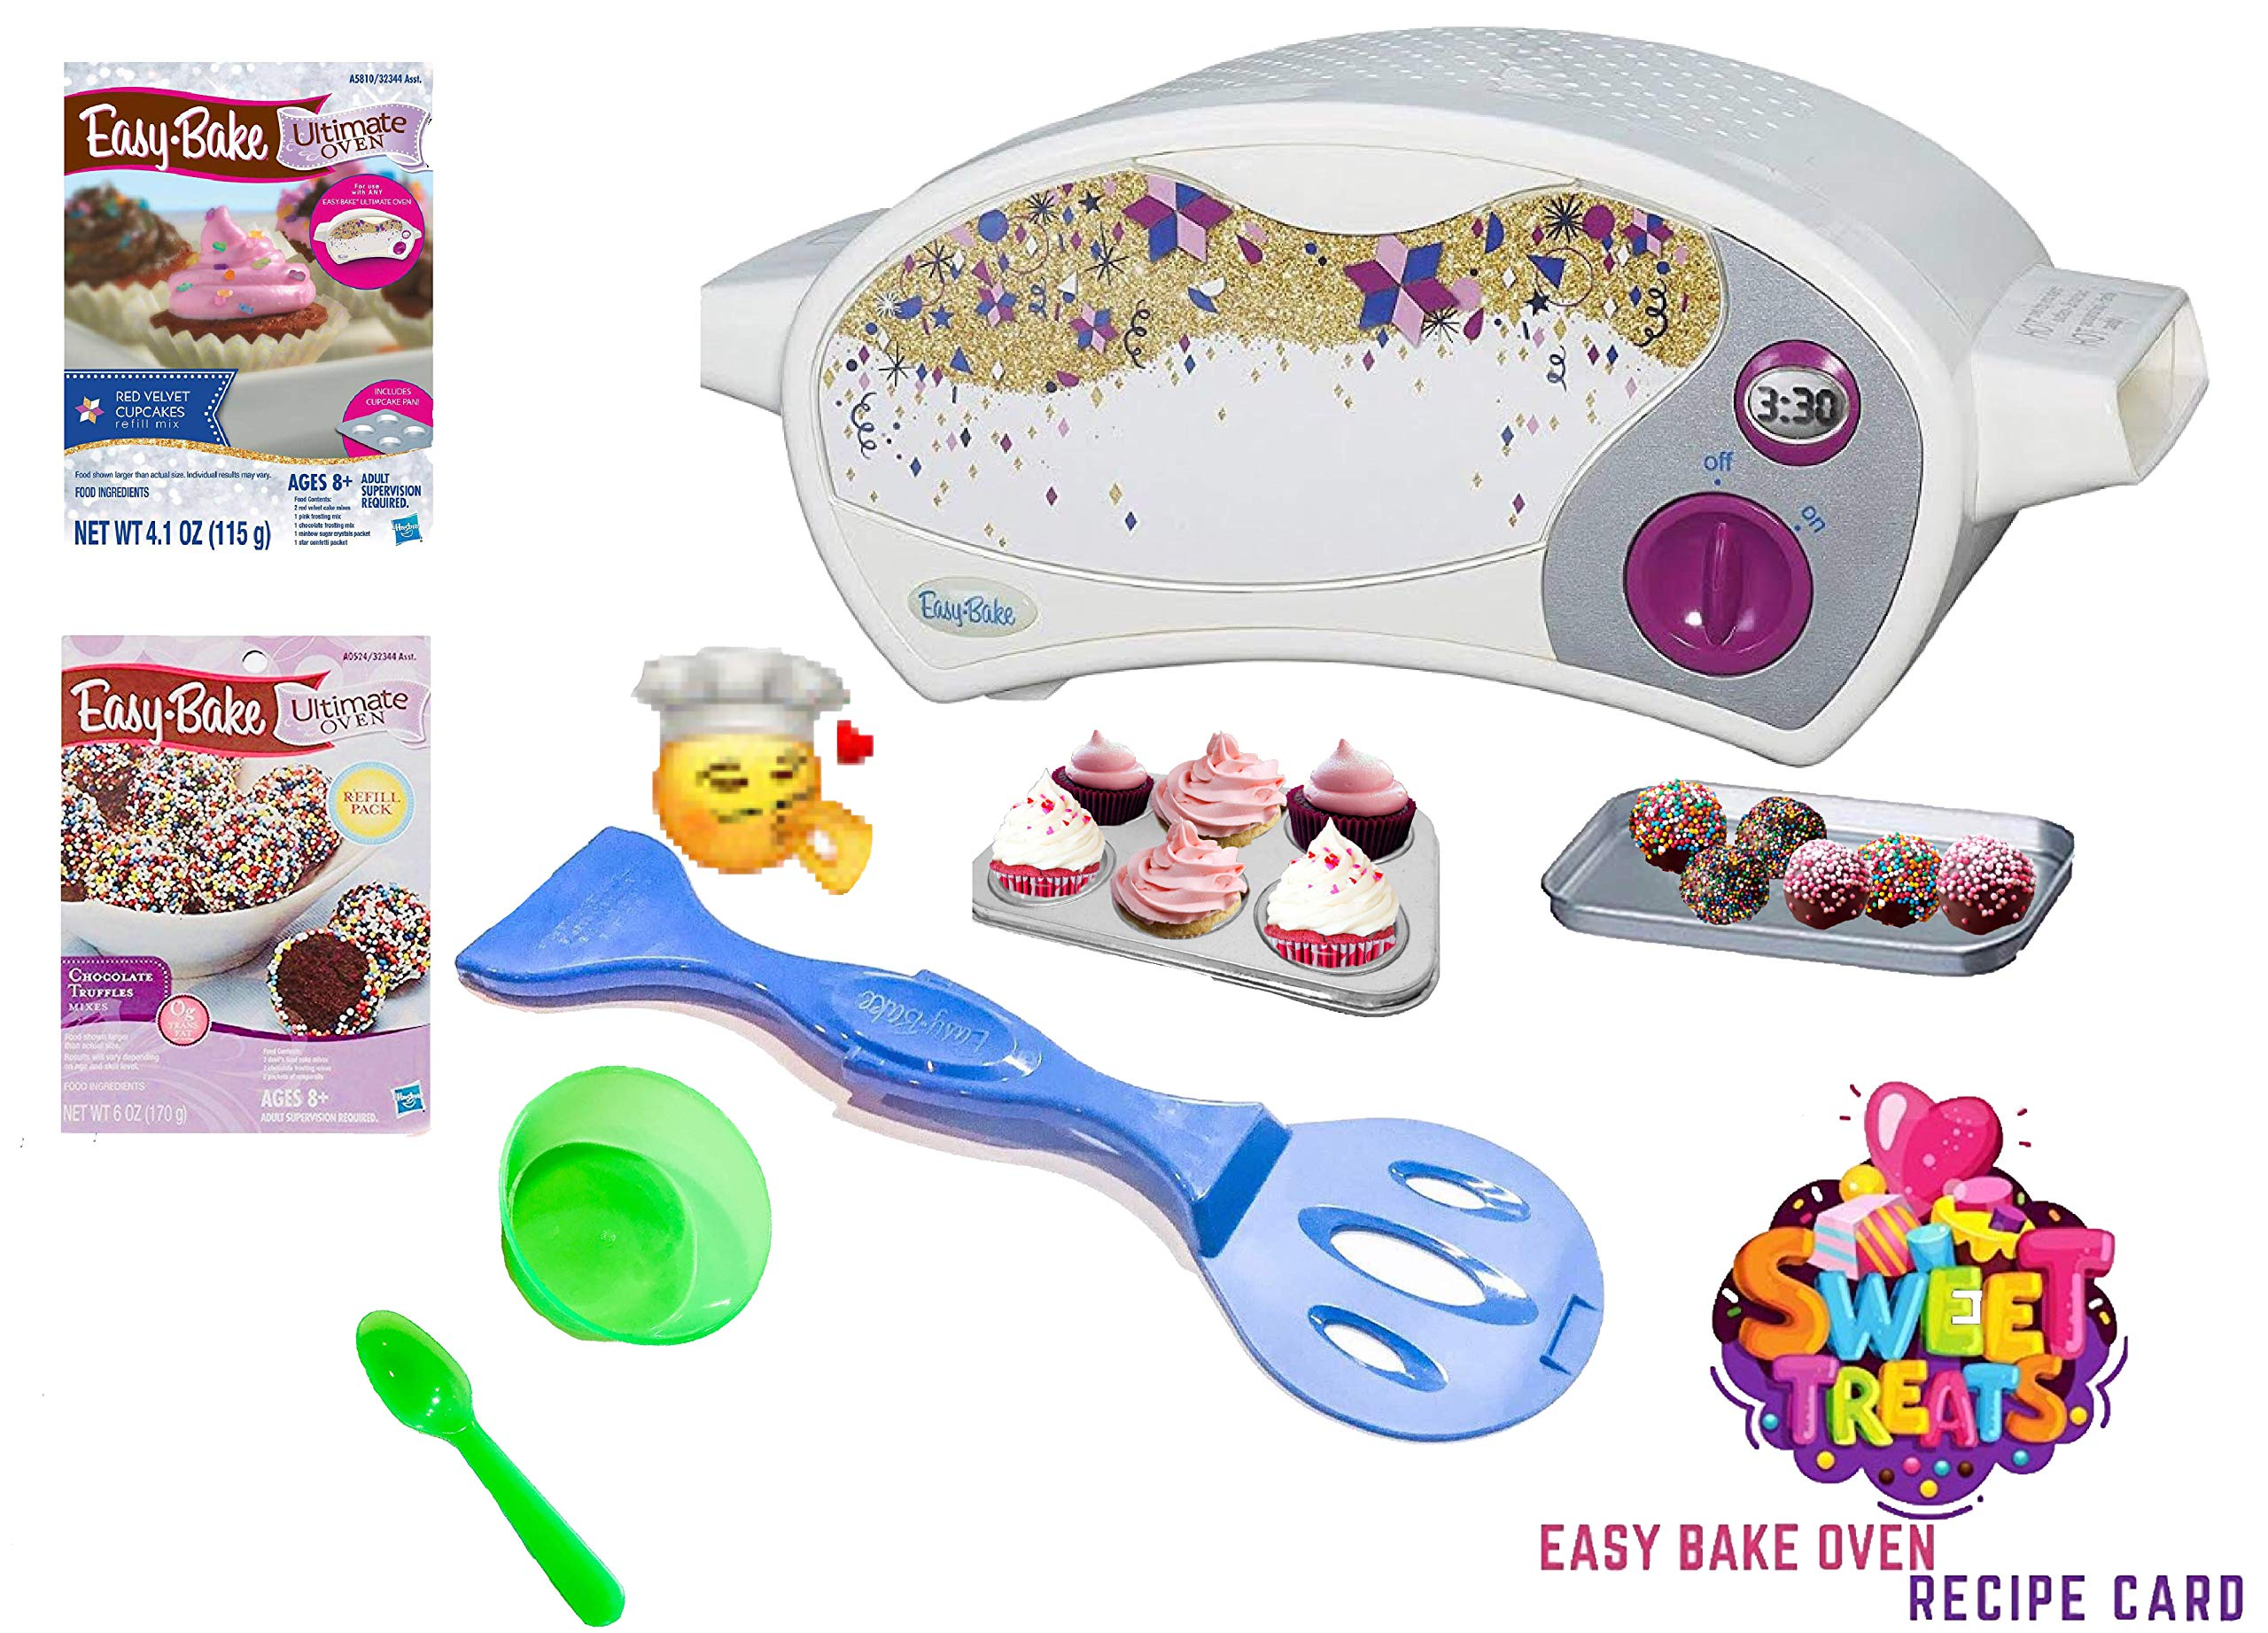 Easy Bake Ultimate Oven Baking Star Edition + 2 Oven Refill Mixes + 2 Sweet Treats Tasty Oven Recipes + Mixing Bowl and Spoon (5 Items Total) (Green) by Easy Bake